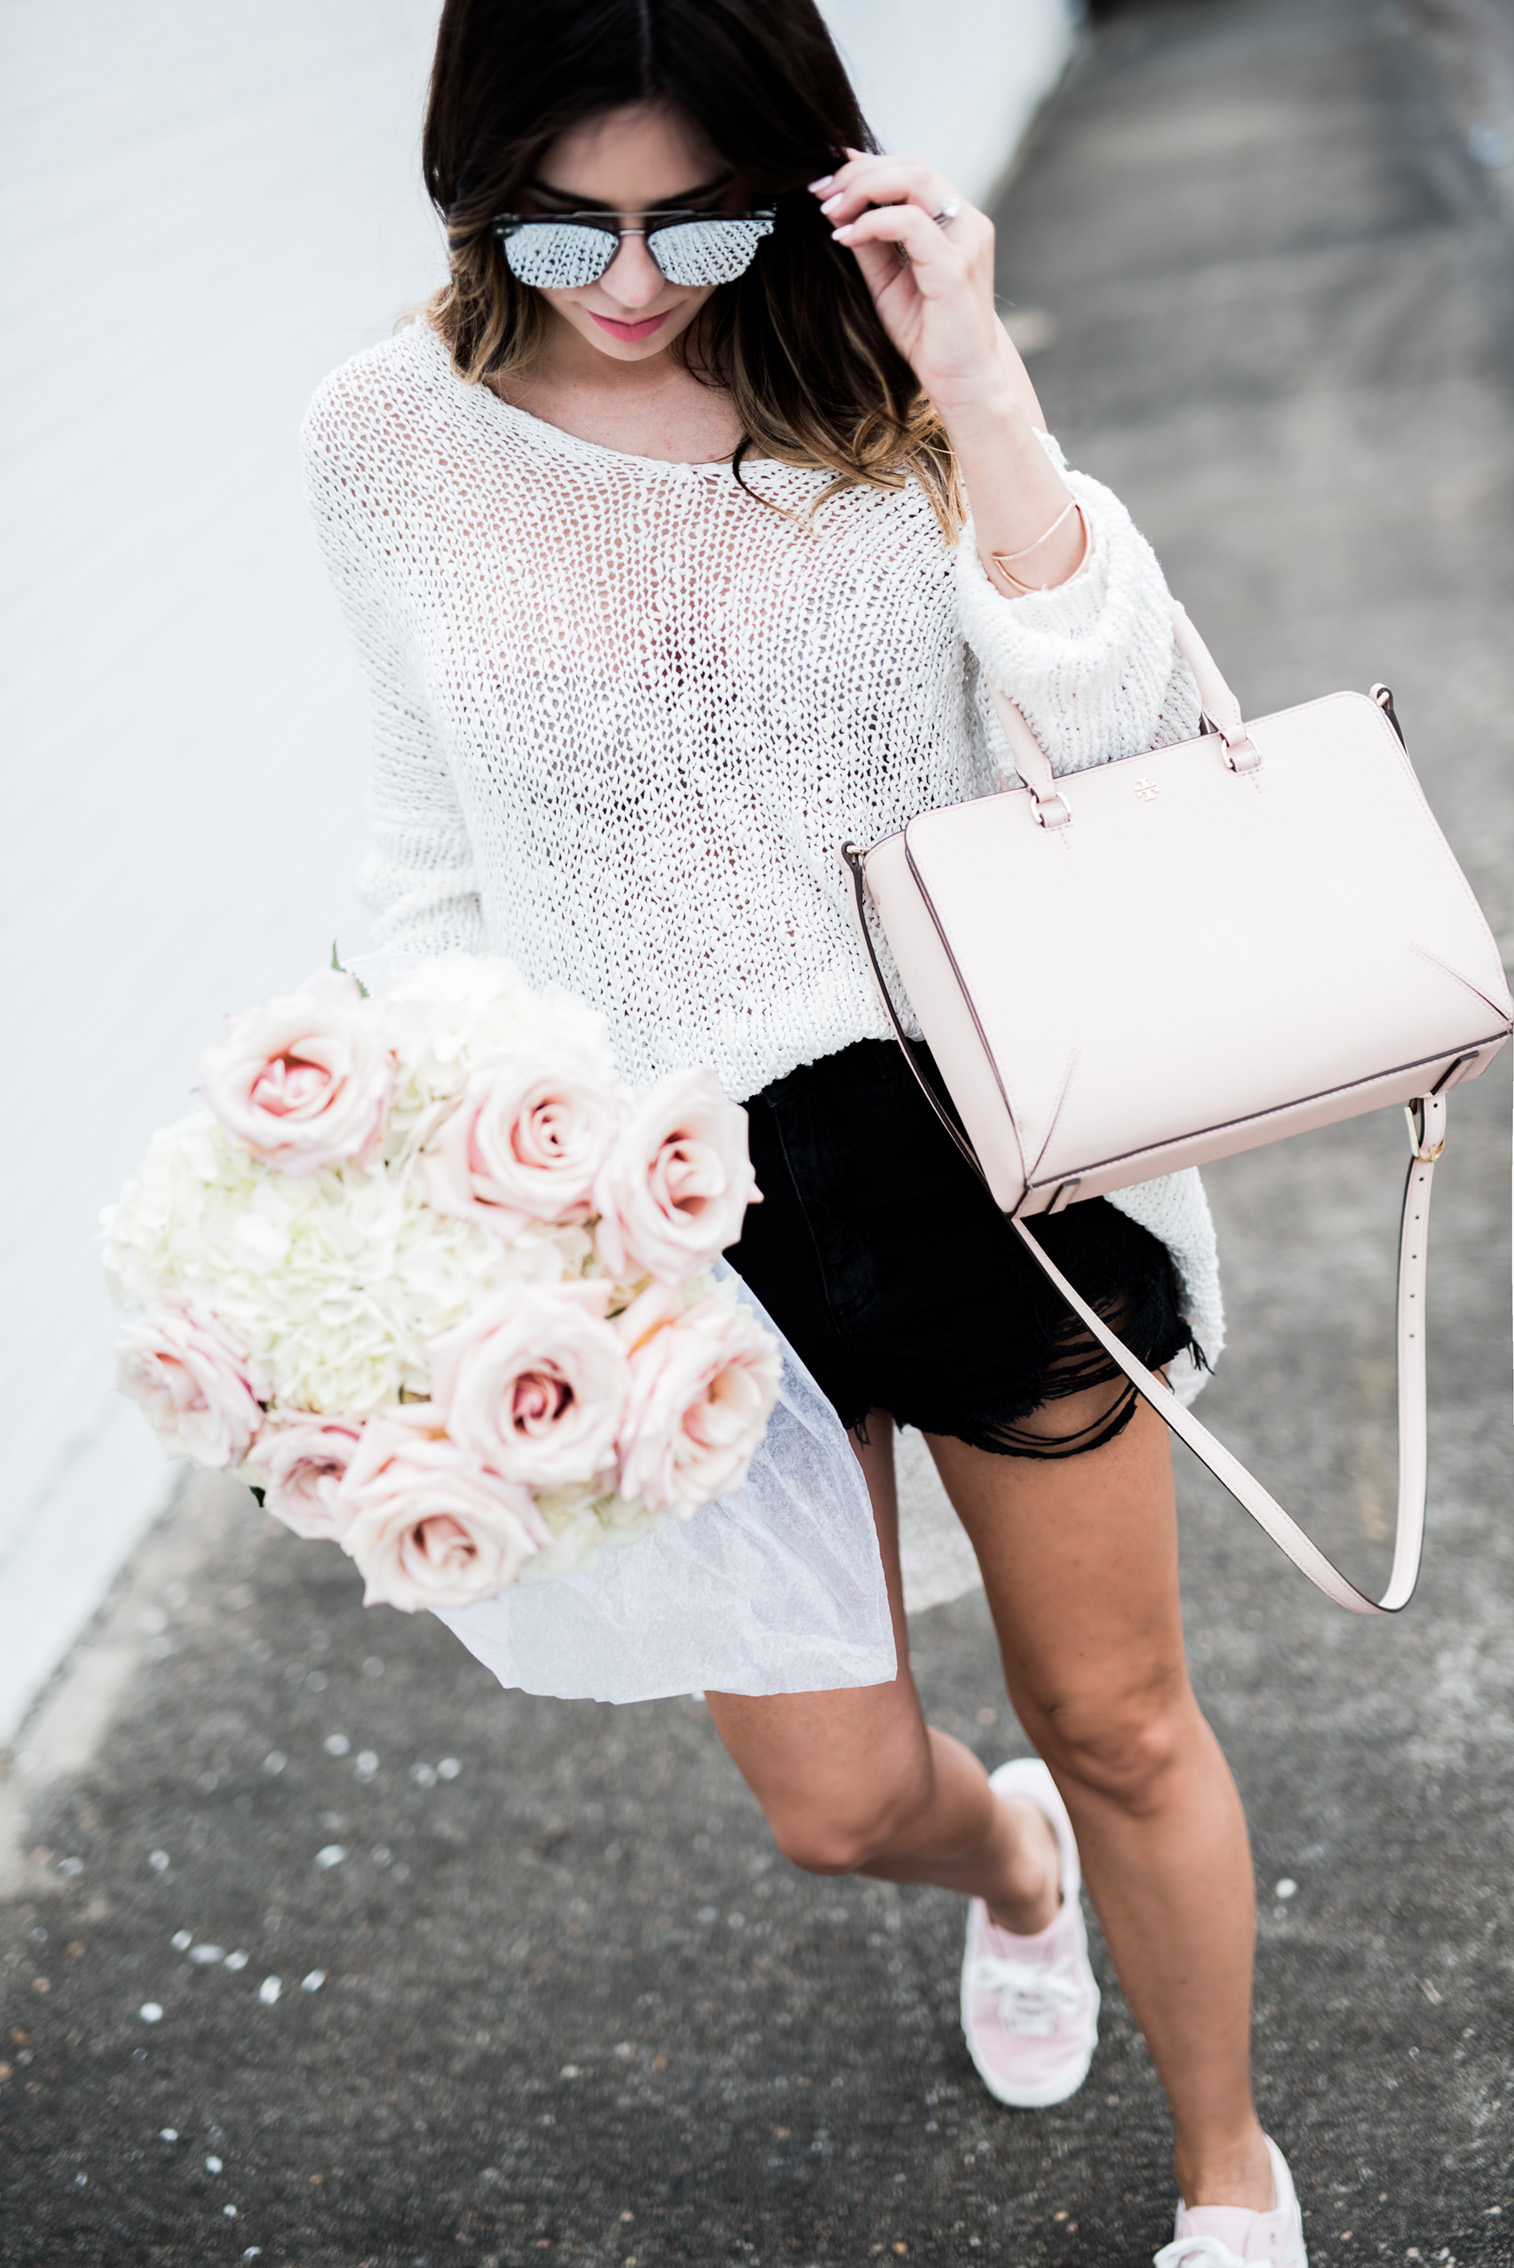 Tiffany Jais Houston fashion and lifestyle blogger | light weight sweater, tretorn sneakers in blush, casual spring outfits